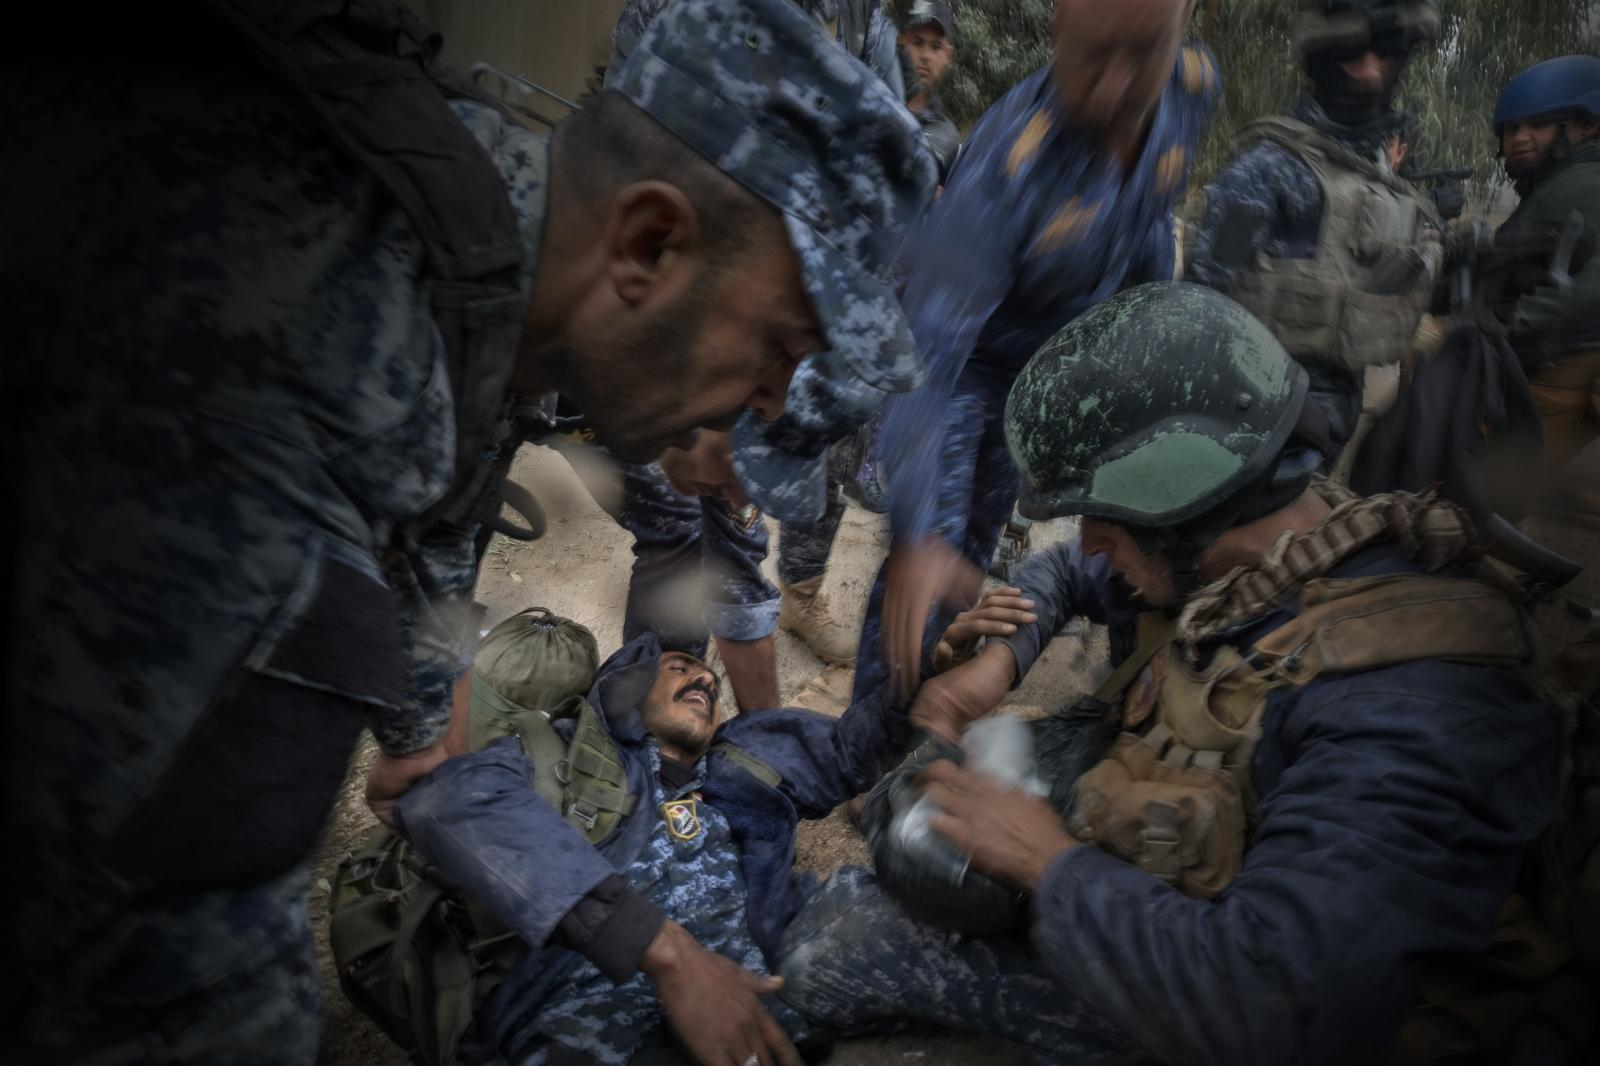 Comrades of a Federal Police soldier (elite units of the Iraqi Security Forces) injured in the explosion of an ISIS car bomb attend to him in the city of Mosul (Iraq, 2017)